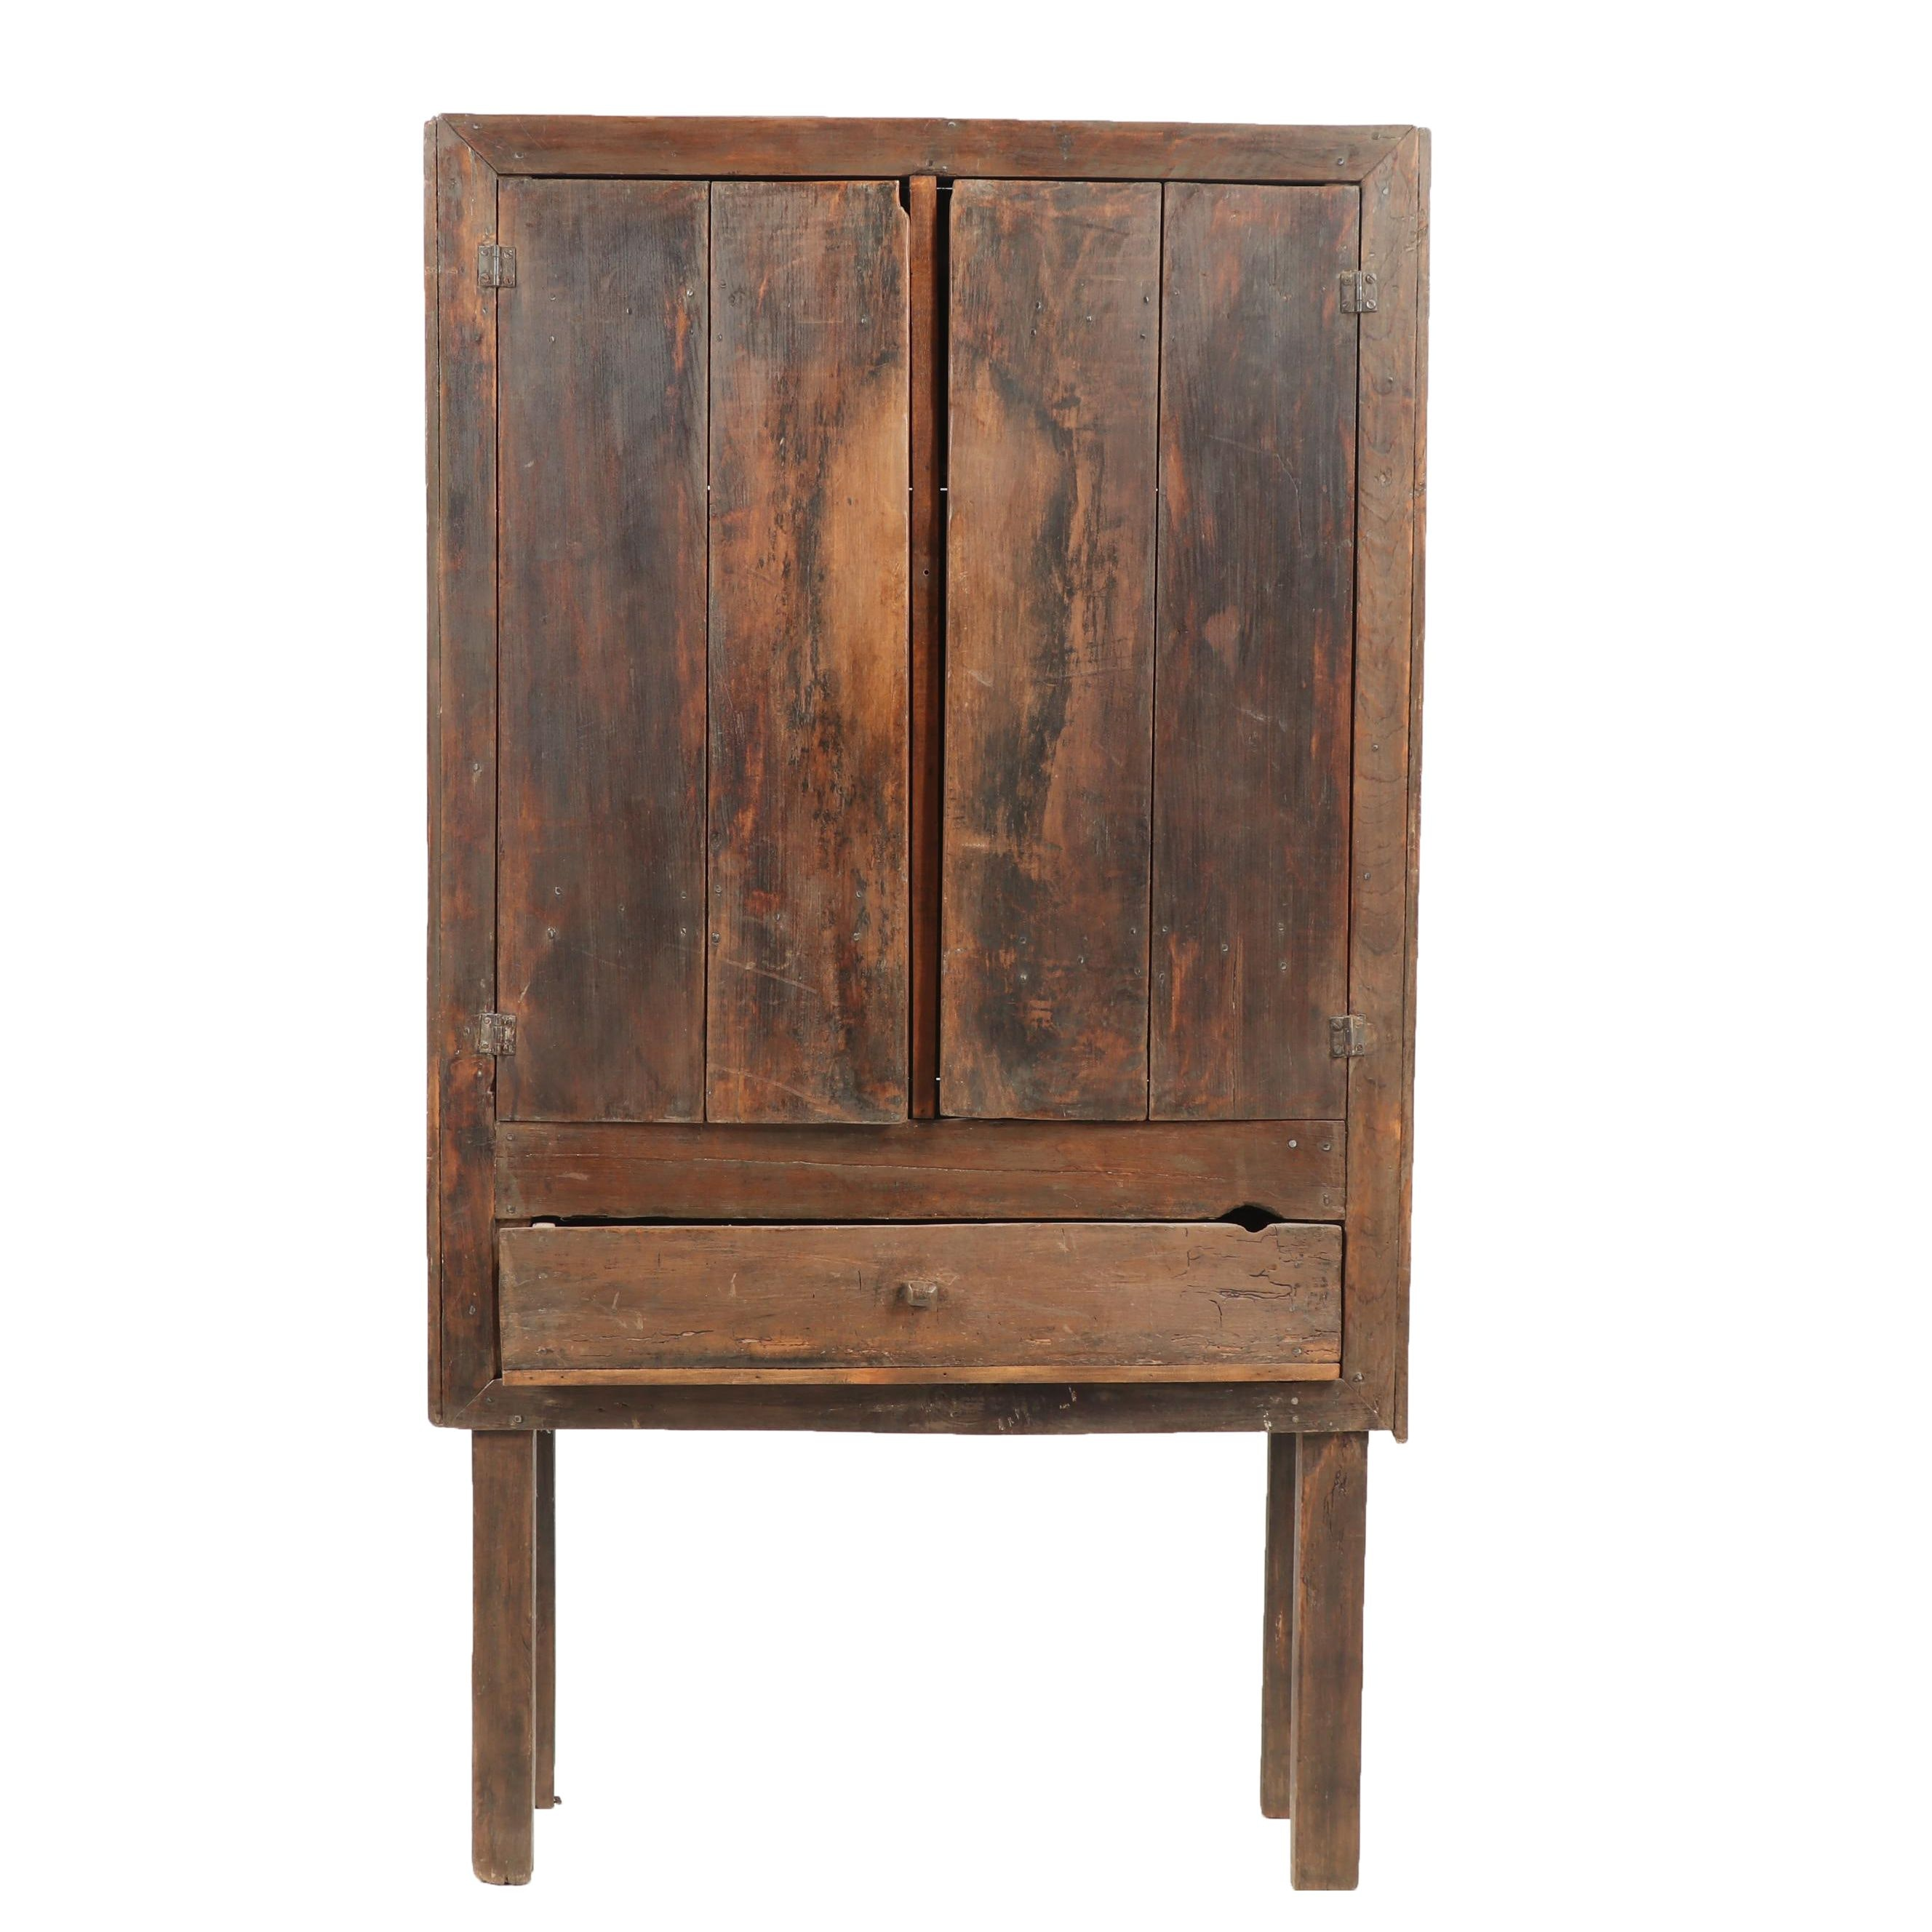 American Primitive Wooden Cabinet, 19th Century and Later